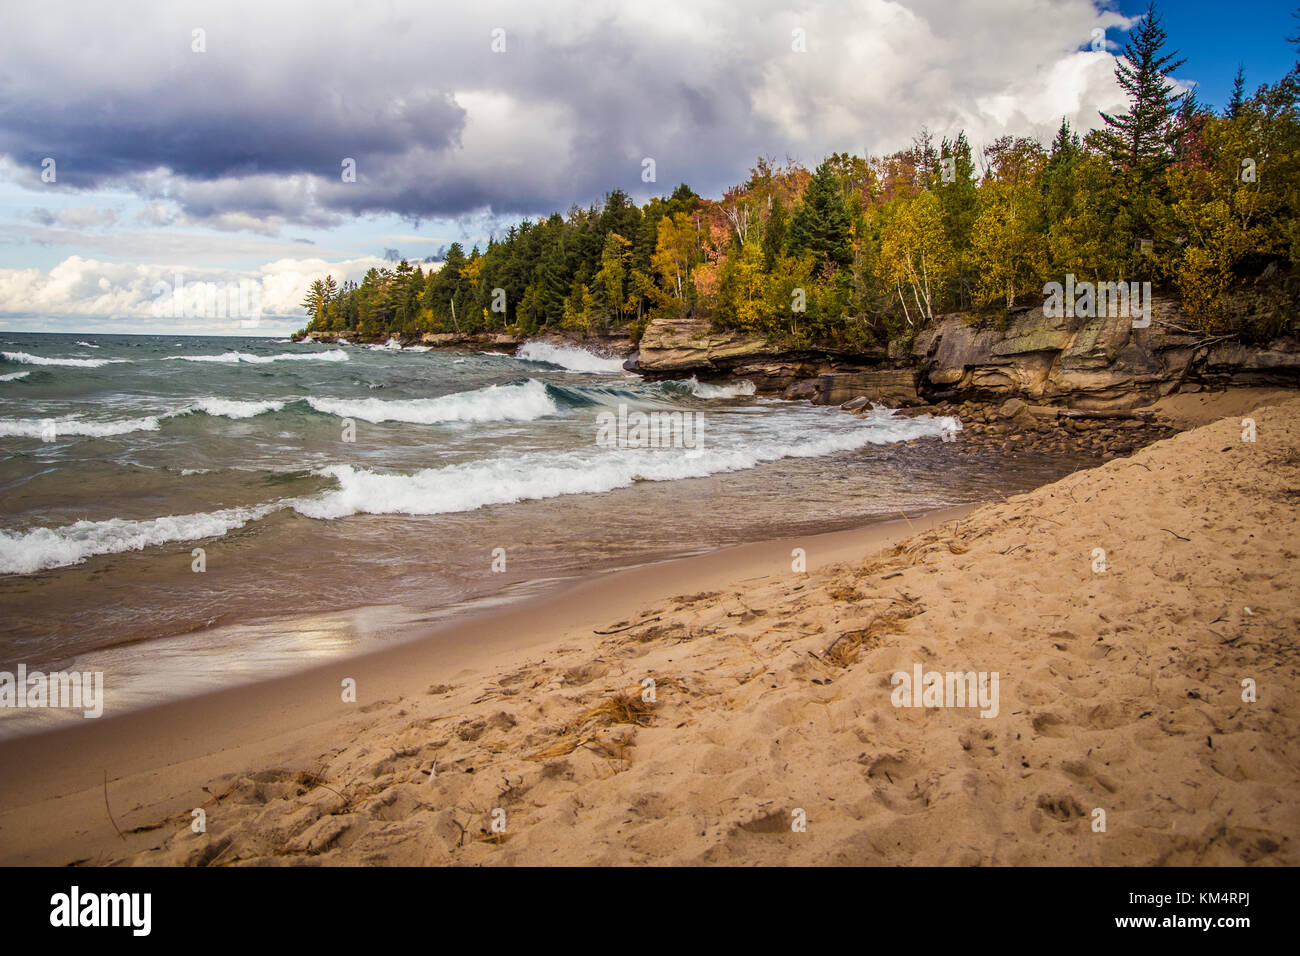 Pictured Rocks National Lakeshore. The wild and rugged coast of Lake Superior along the Pictured Rocks National Stock Photo